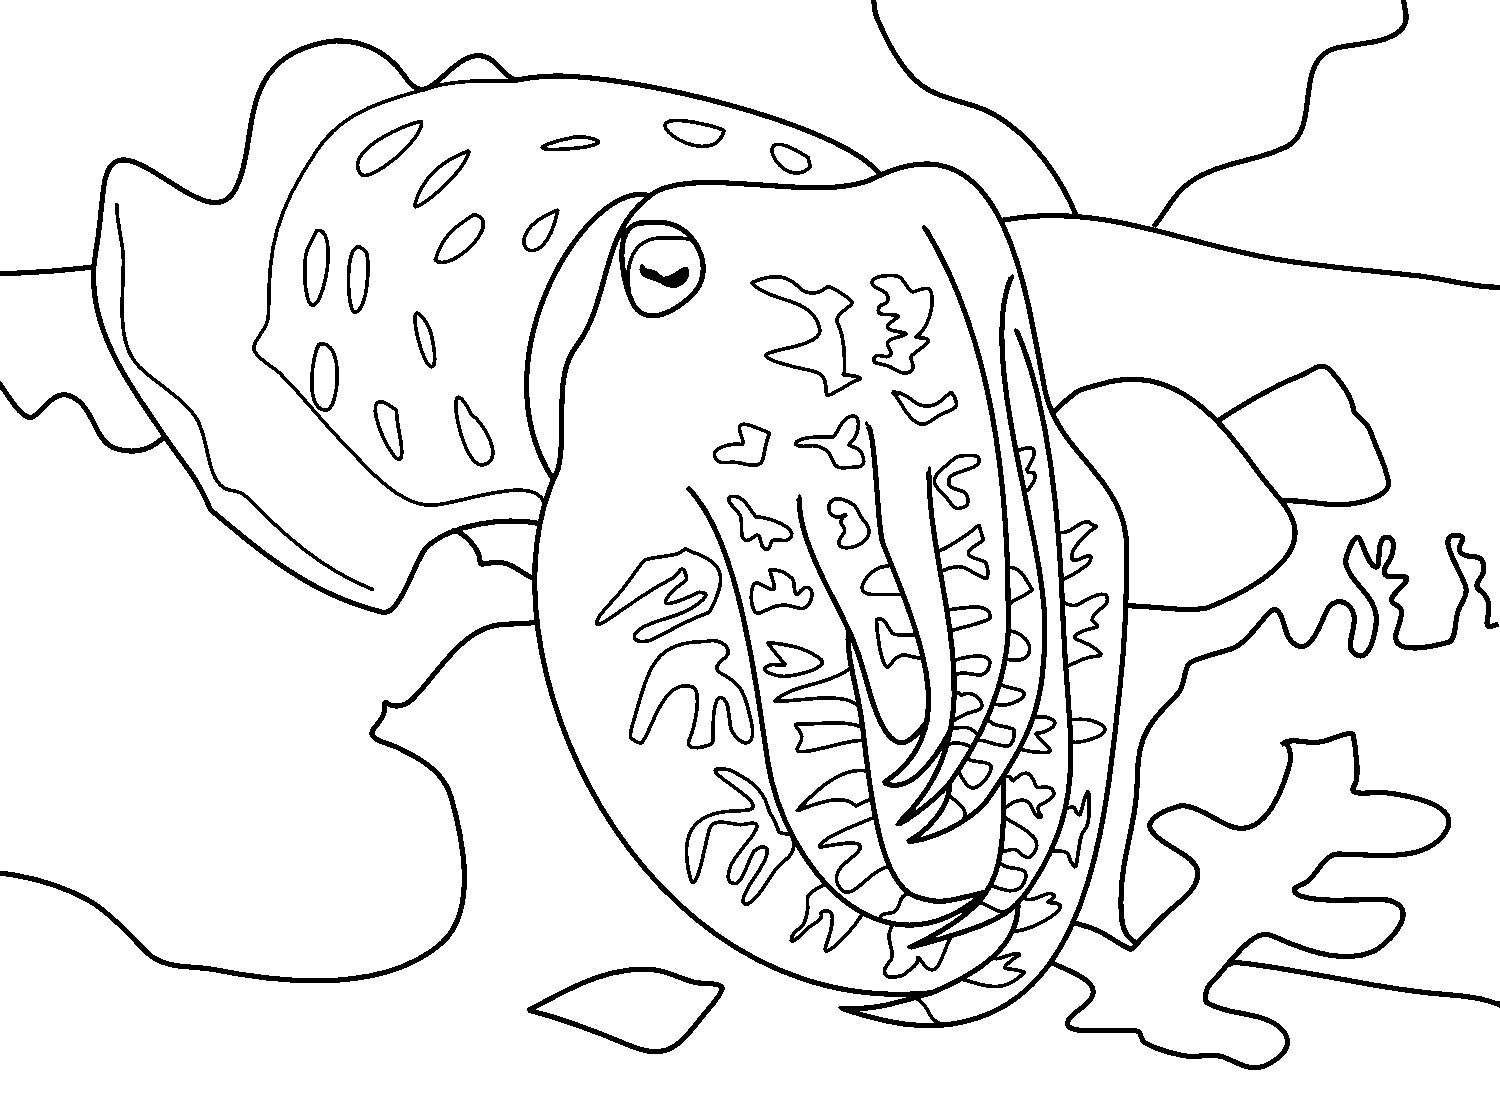 Cuttlefish Coloring Pages Free Coloring Book Download Coloring Books Coloring Pages